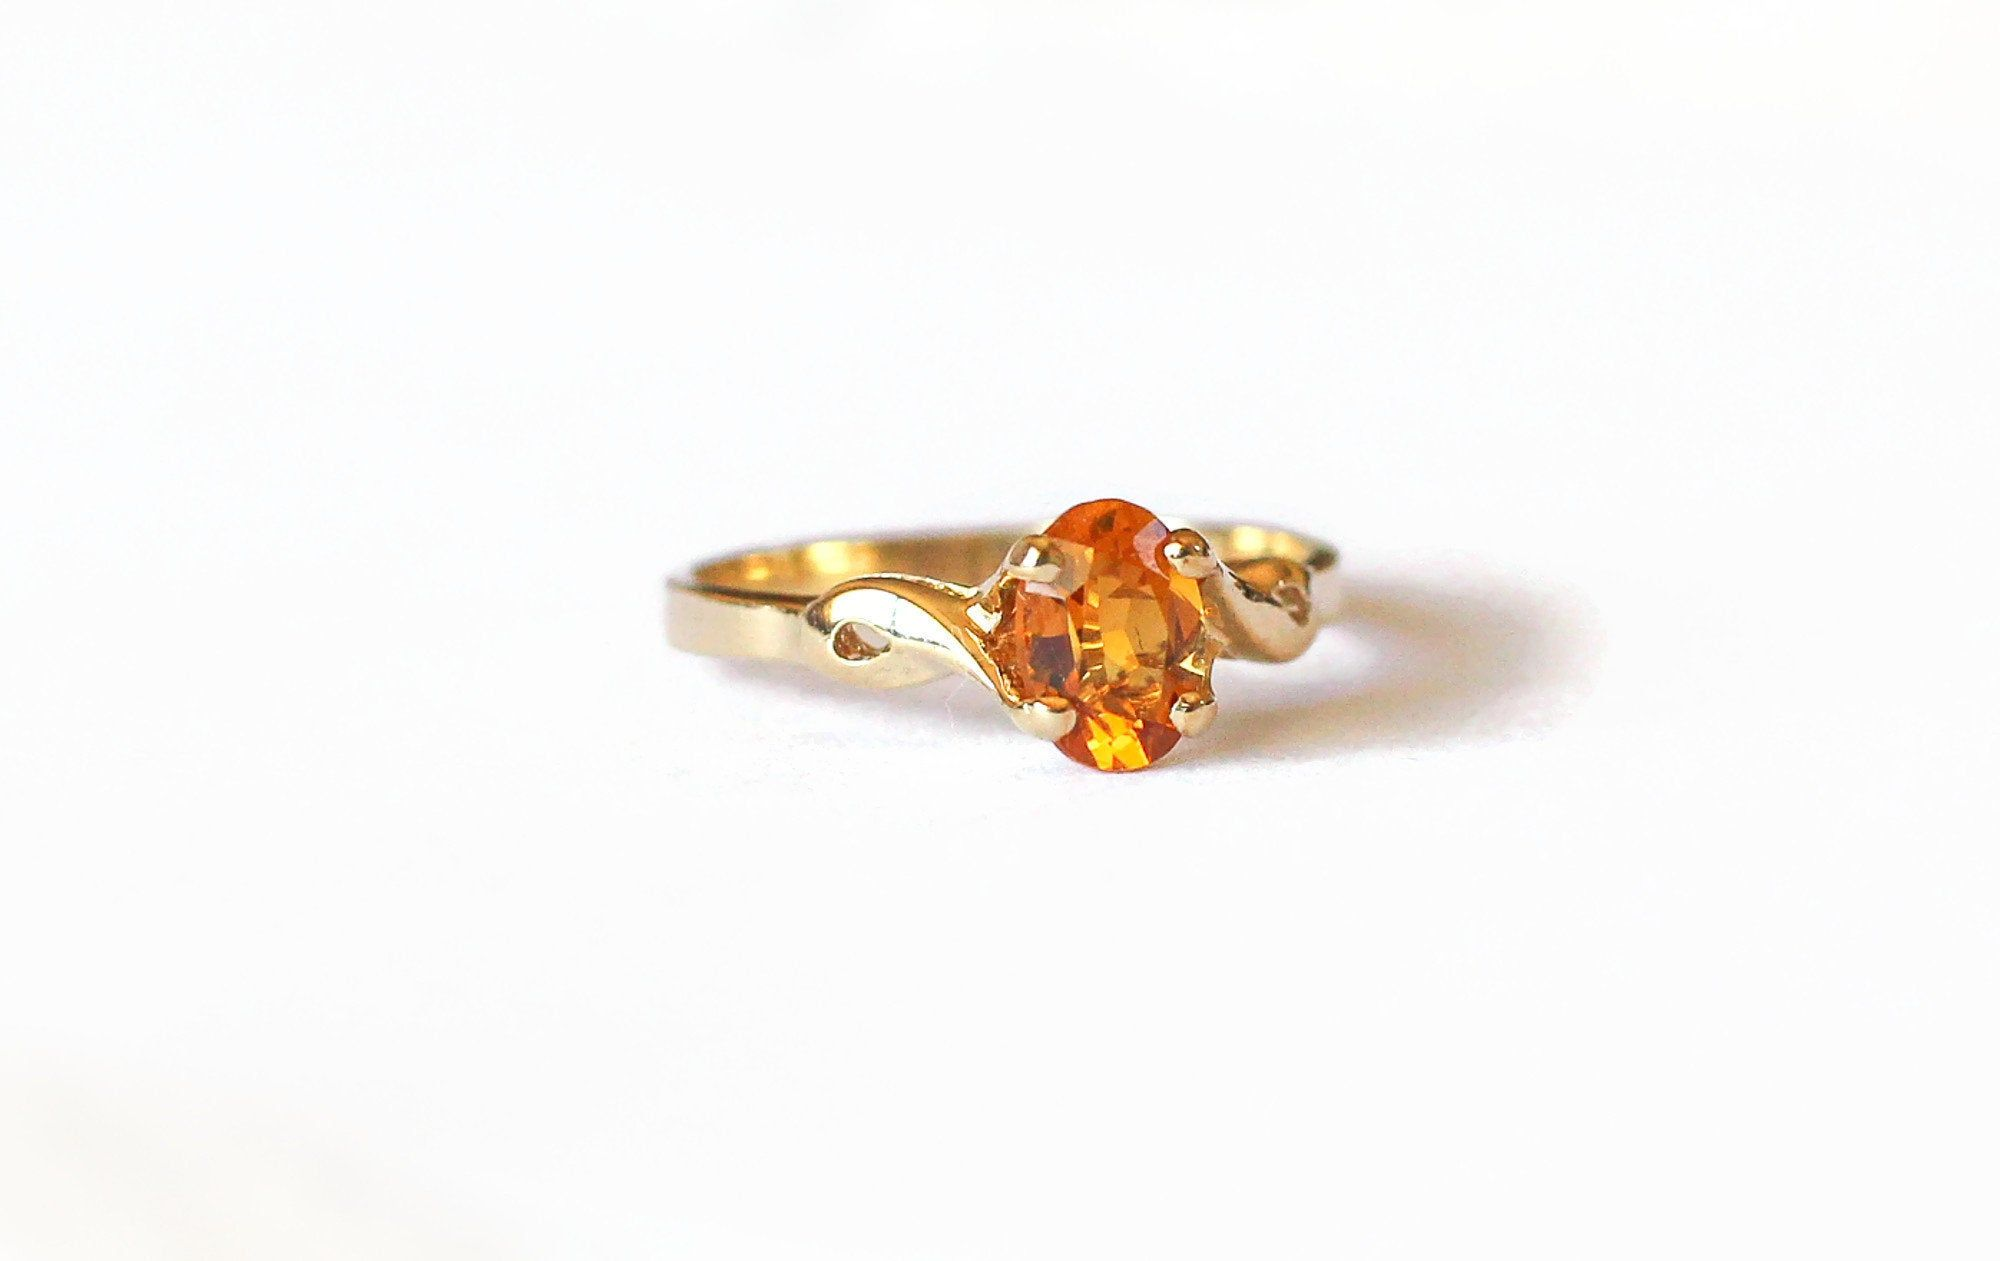 Vintage Gold Citrine Ring November Birthstone 10k Yellow Etsy Citrine Ring Ring Designs Vintage Gold